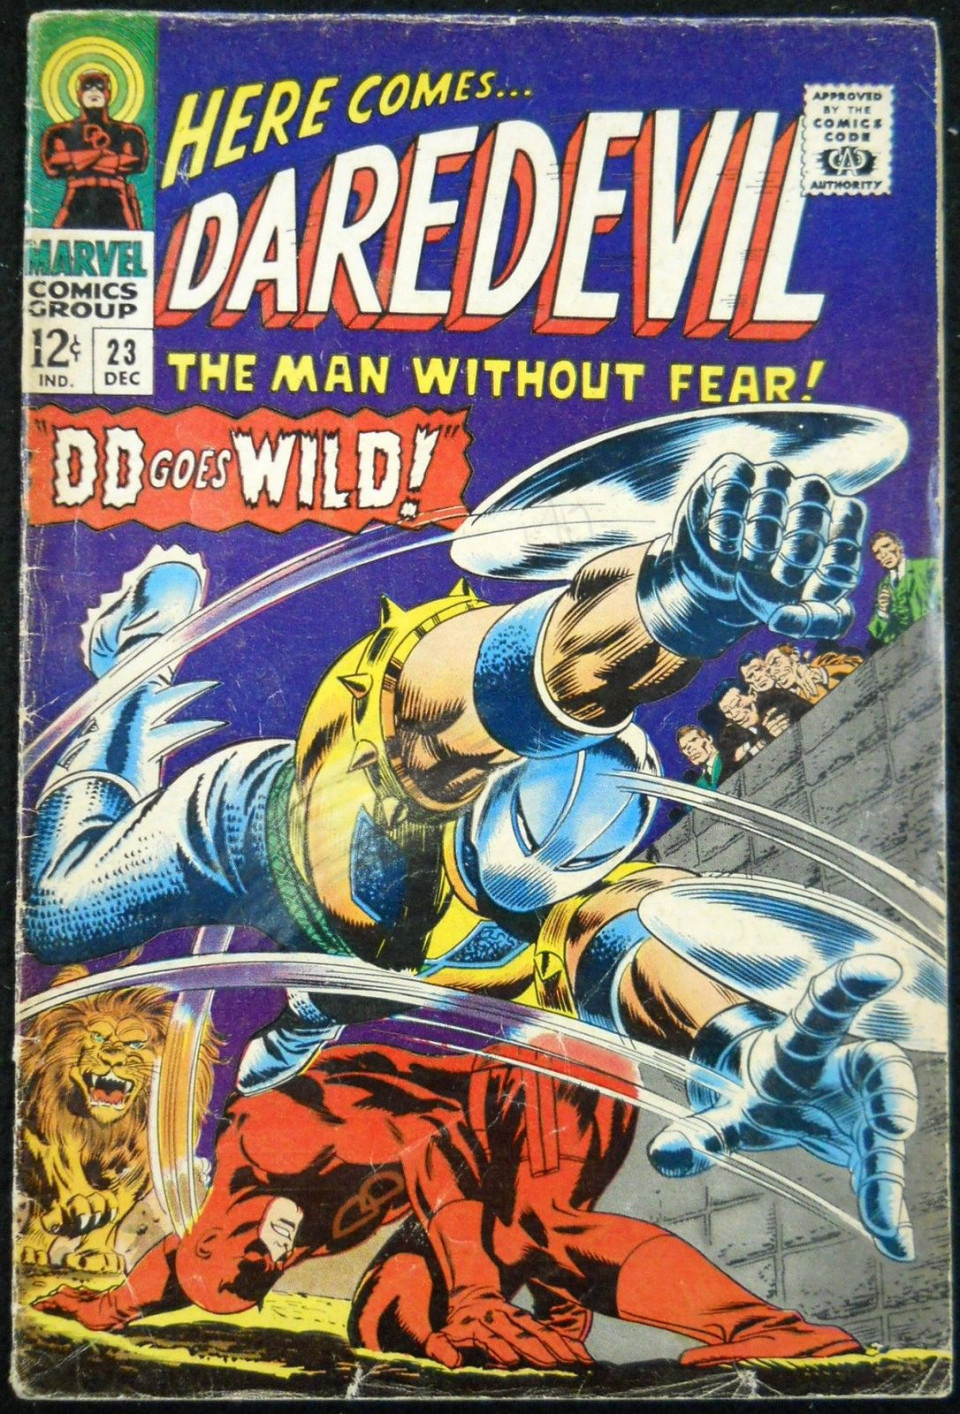 Daredevil 23 - cover art by Gene Colan